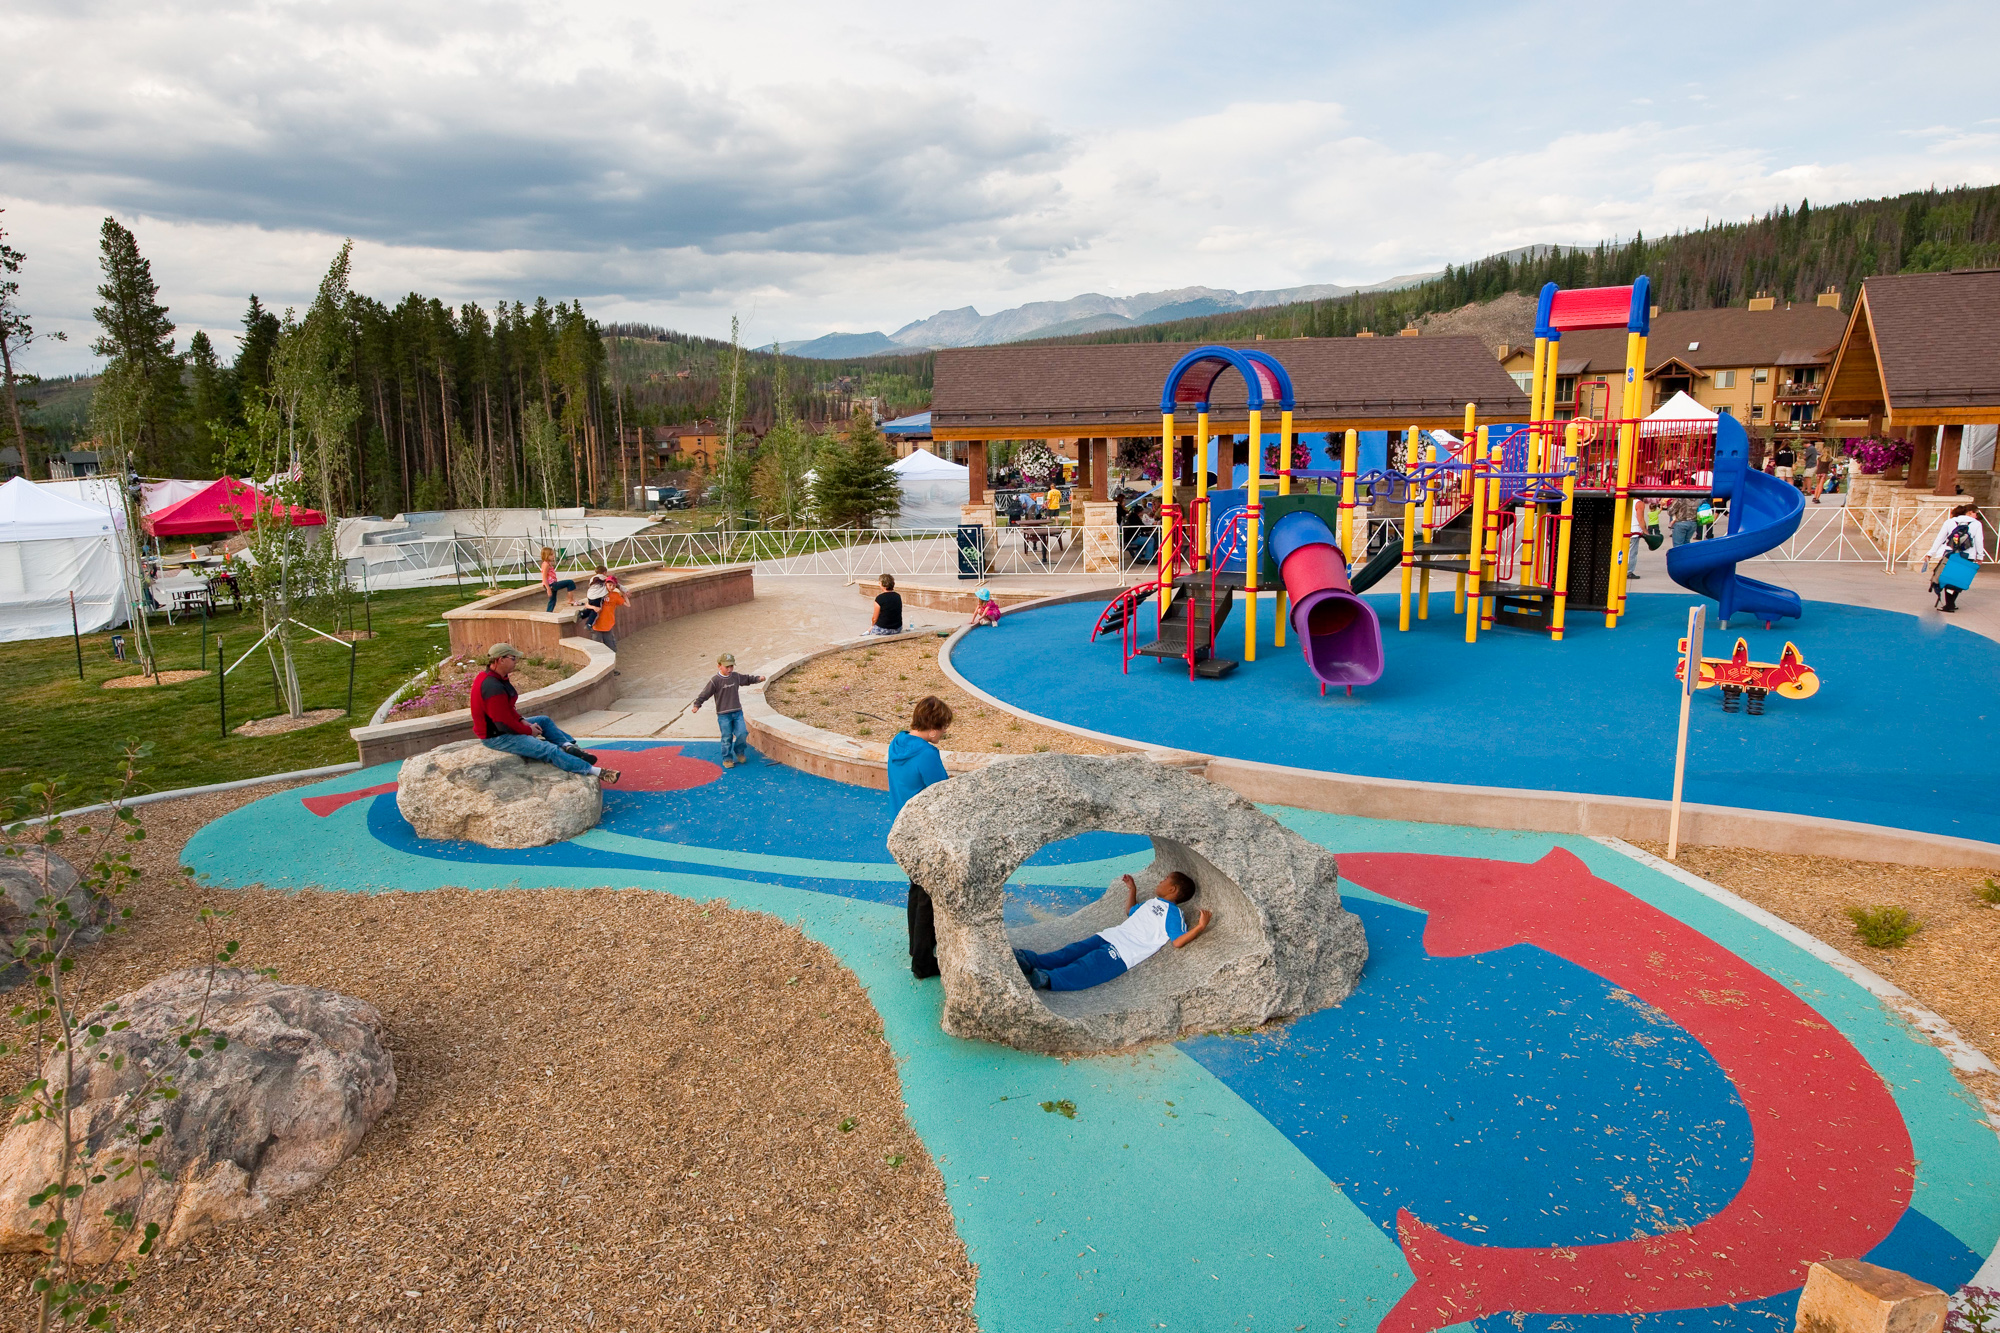 Kids play and explore at Hideaway Park's custom adventure outdoor playground